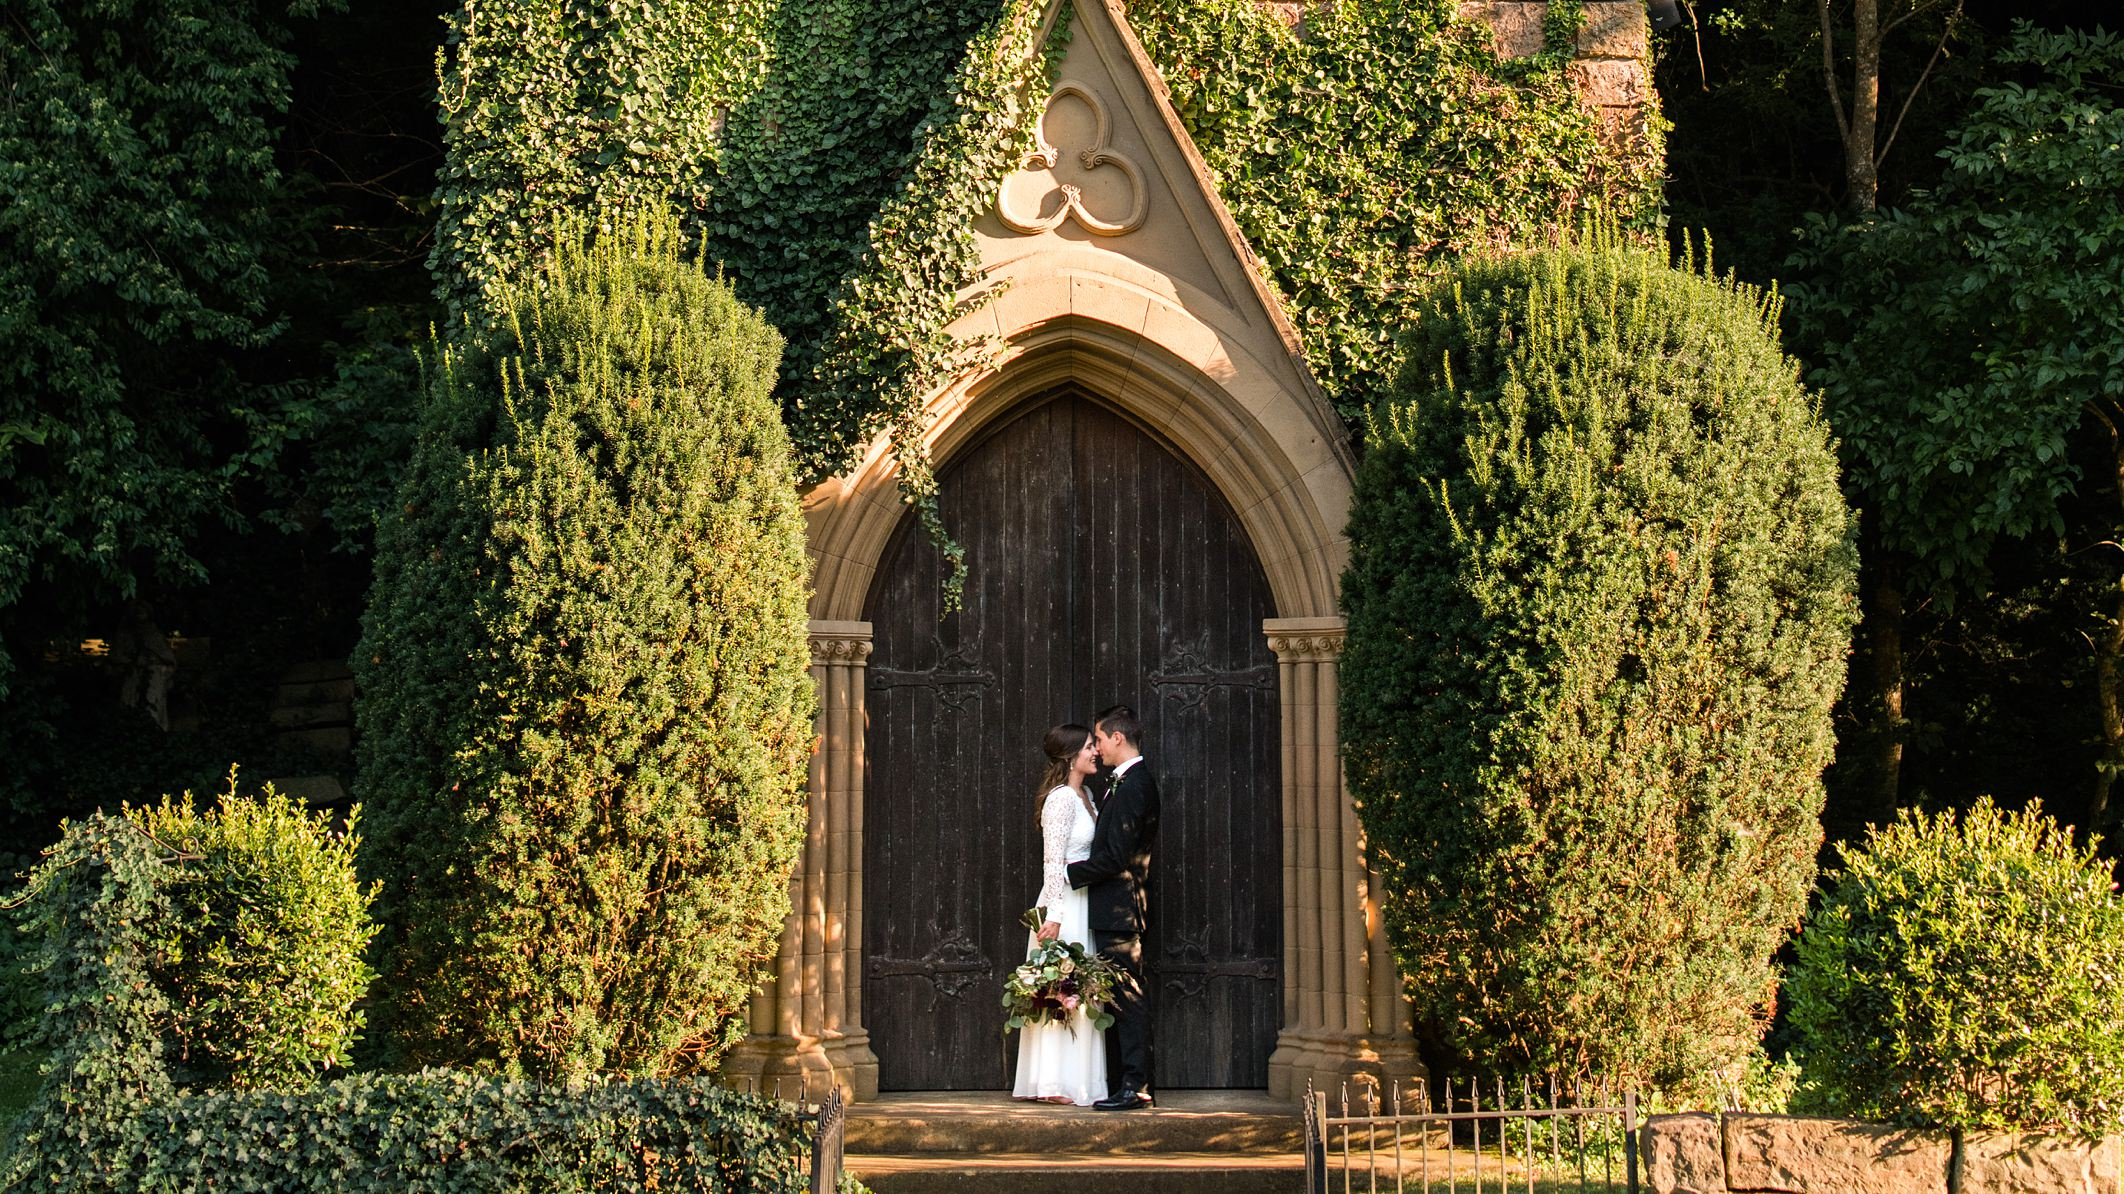 David + Kayla Wedding at St. Catherine's at Bell Gable in Fayetteville, AR